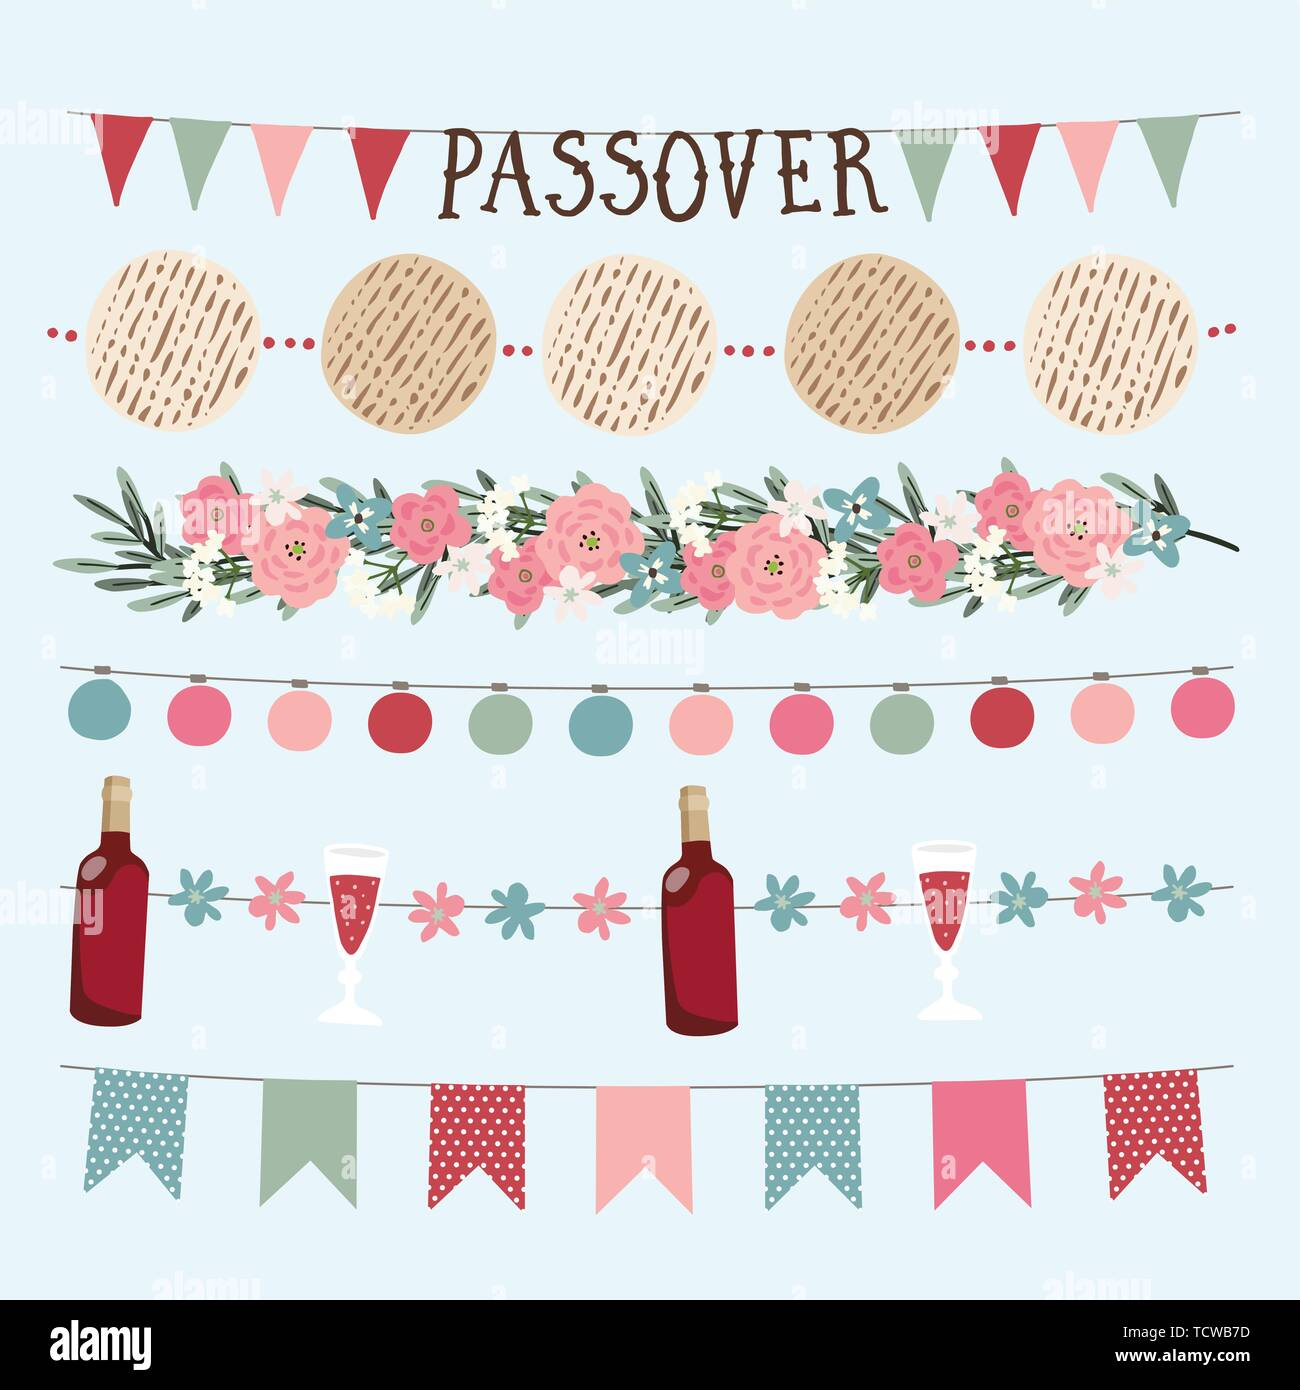 Set of hand drawn Jewish holiday Pesach, Passover garlands with lights, party bunting flags. Hand drawn web banners, borders with bottle of wine - Stock Vector